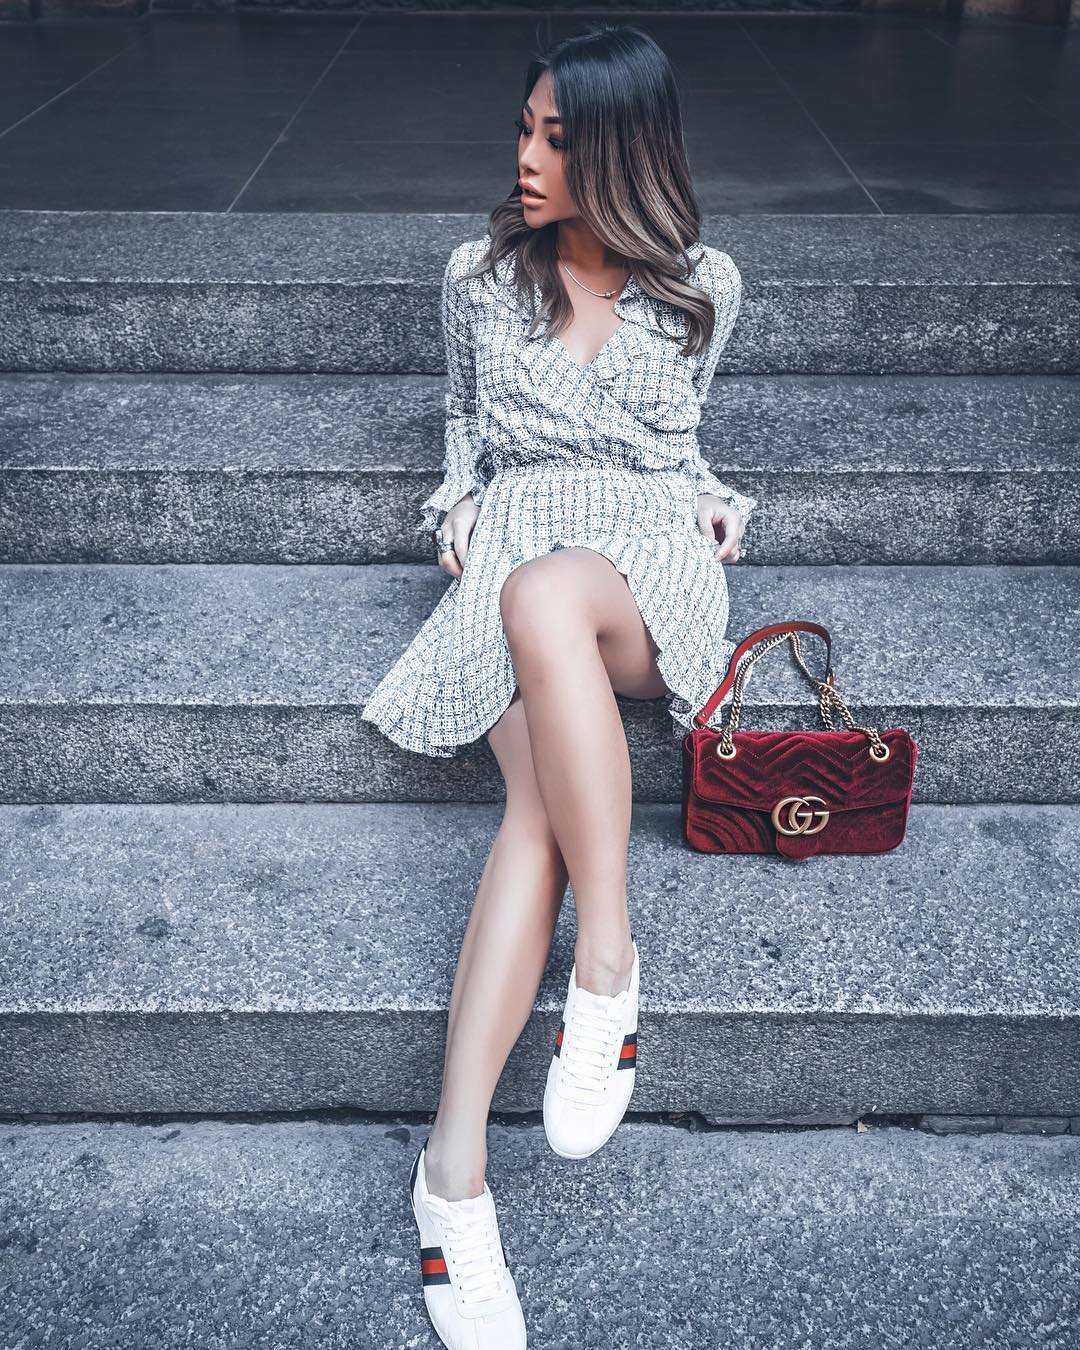 Casual Office Style: Plaid Ruffle Wrap Dress With White Sneakers And Maroon Clutch Bag 2020